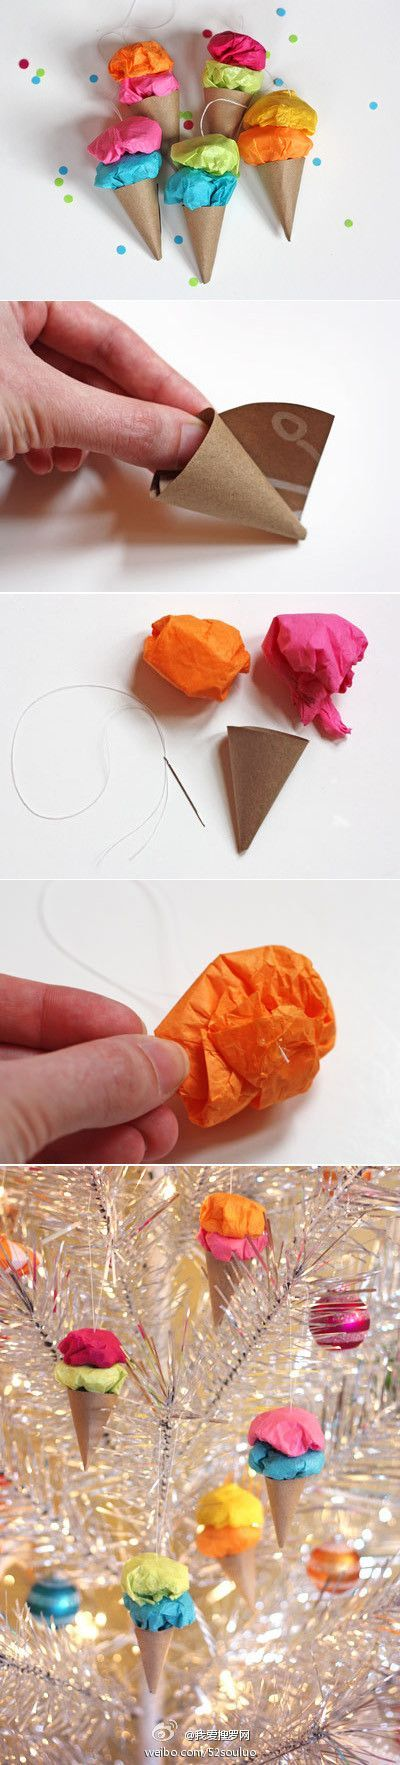 tiny gifts14